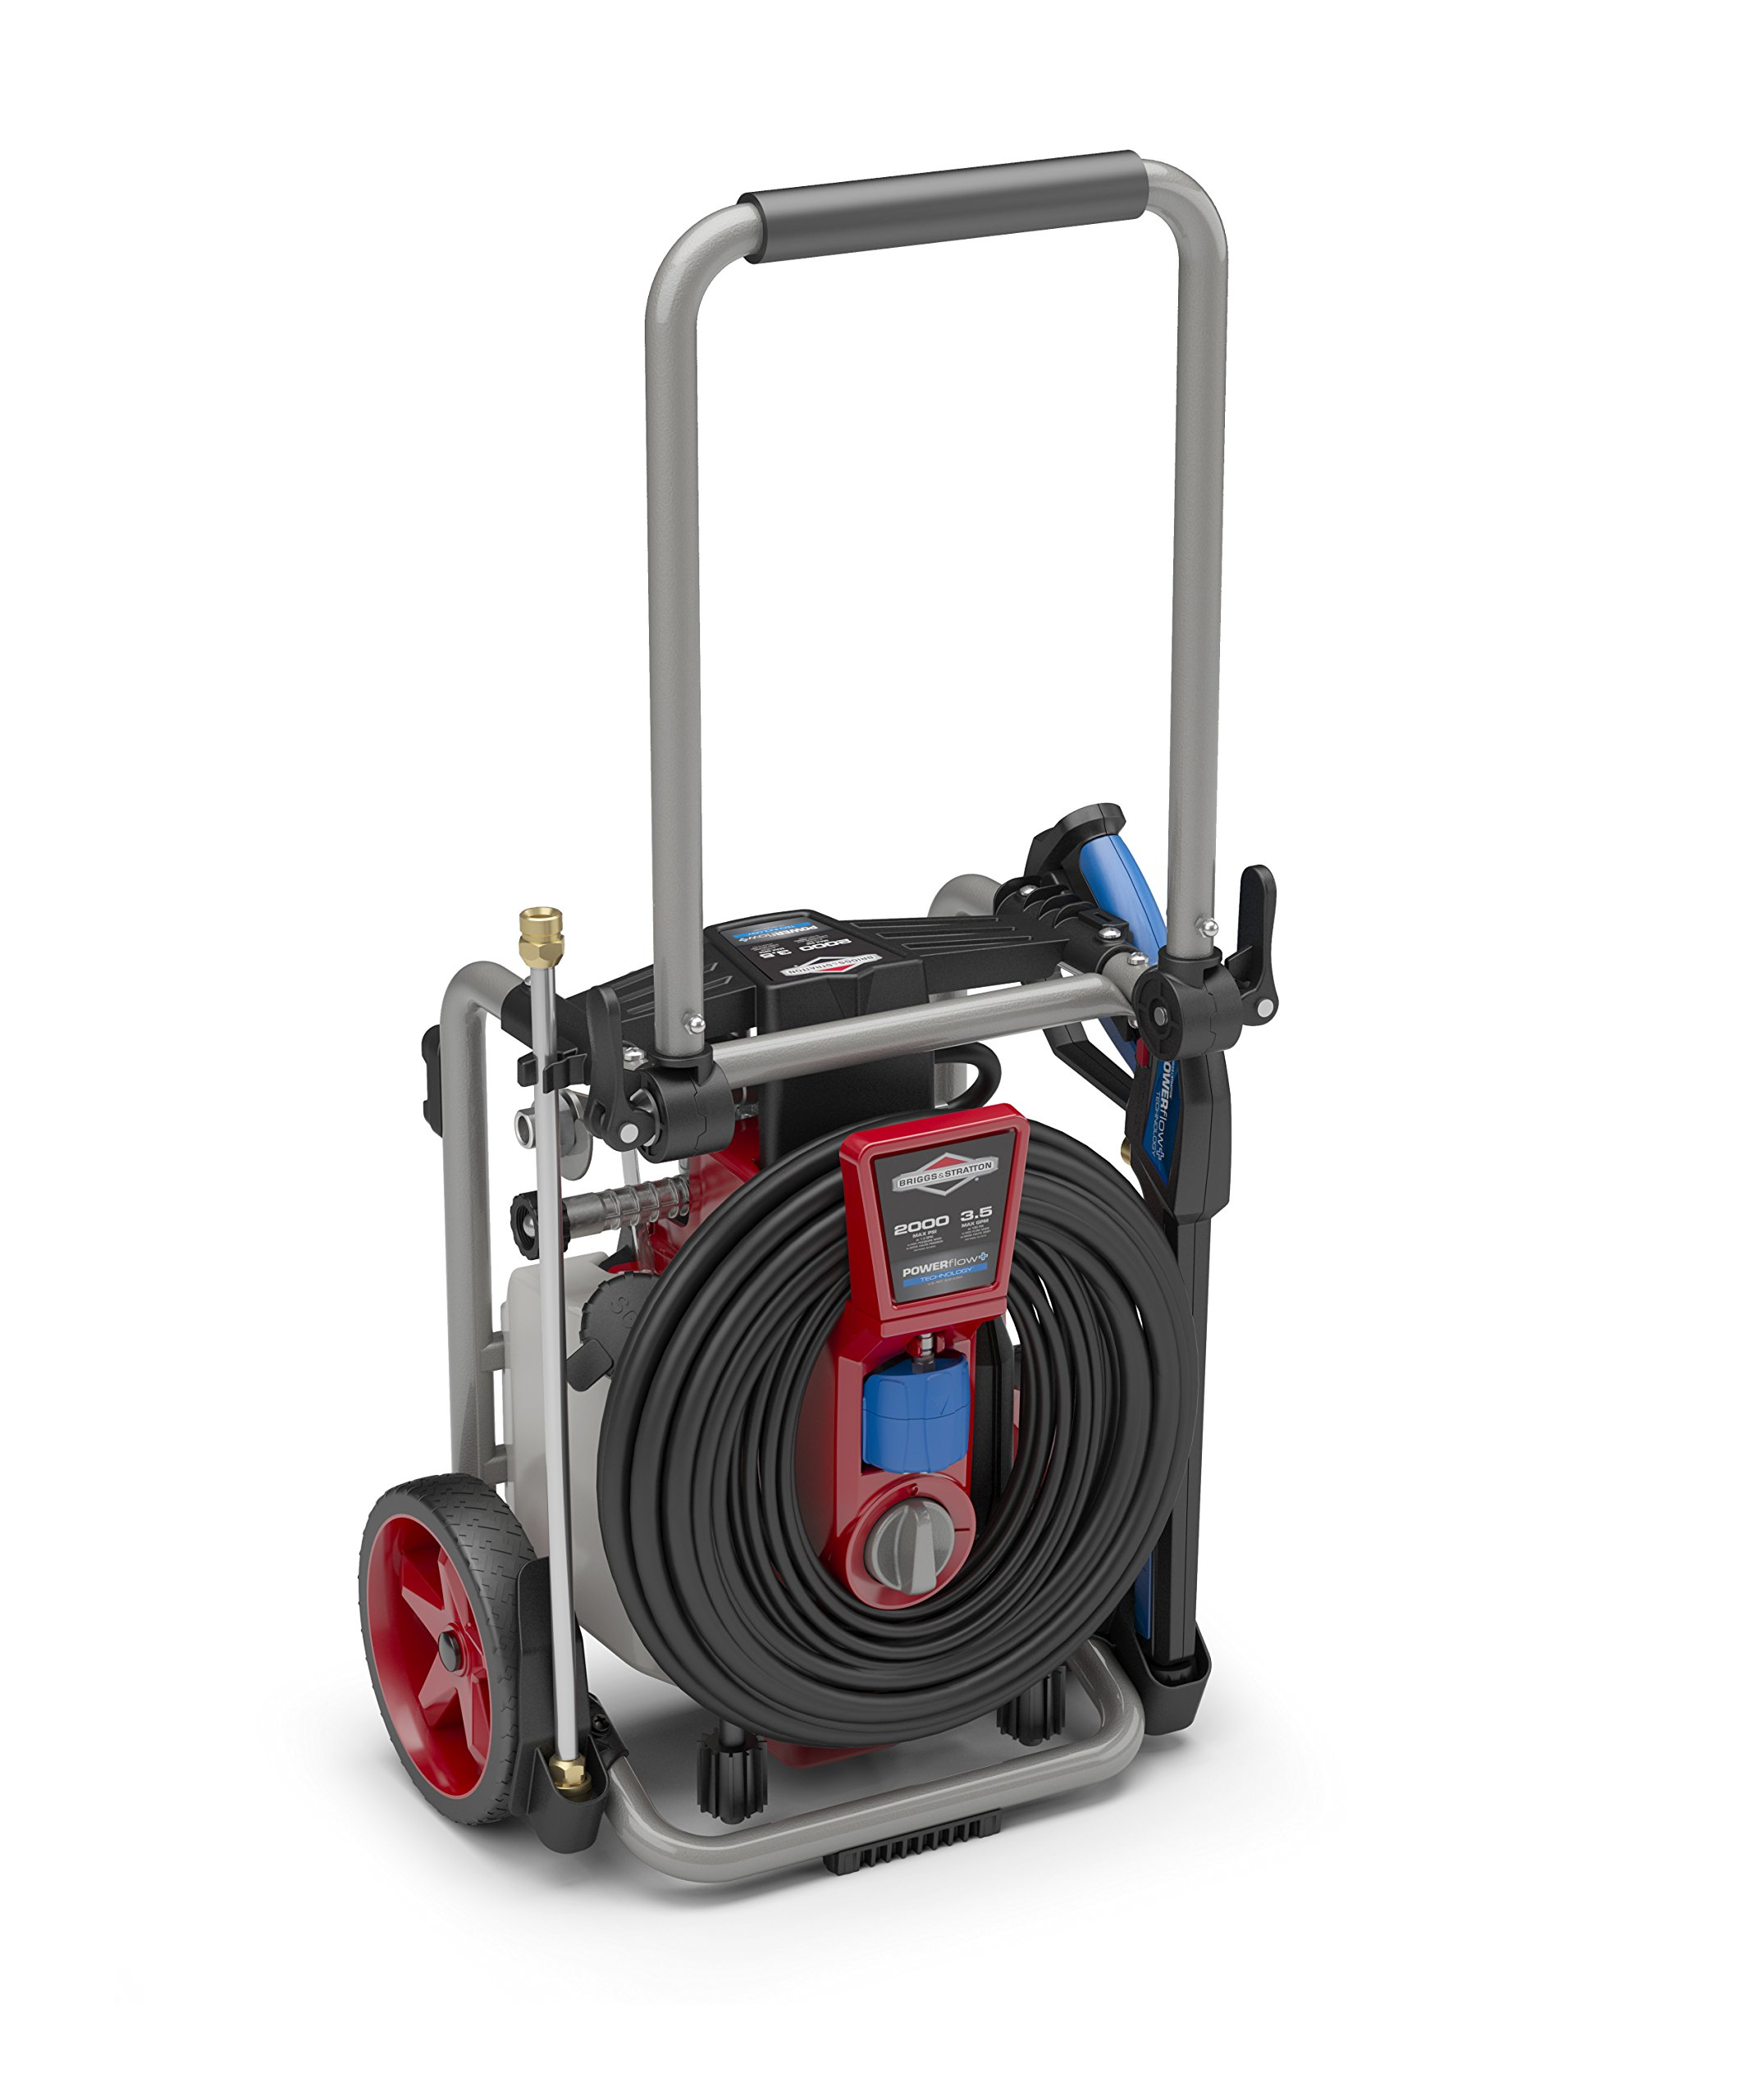 Briggs & Stratton Electric Pressure Washer 2000 PSI 3.5 GPM POWERflow+ Technology, 7-in-1 Nozzle, 25-Foot Hose & Detergent Tank